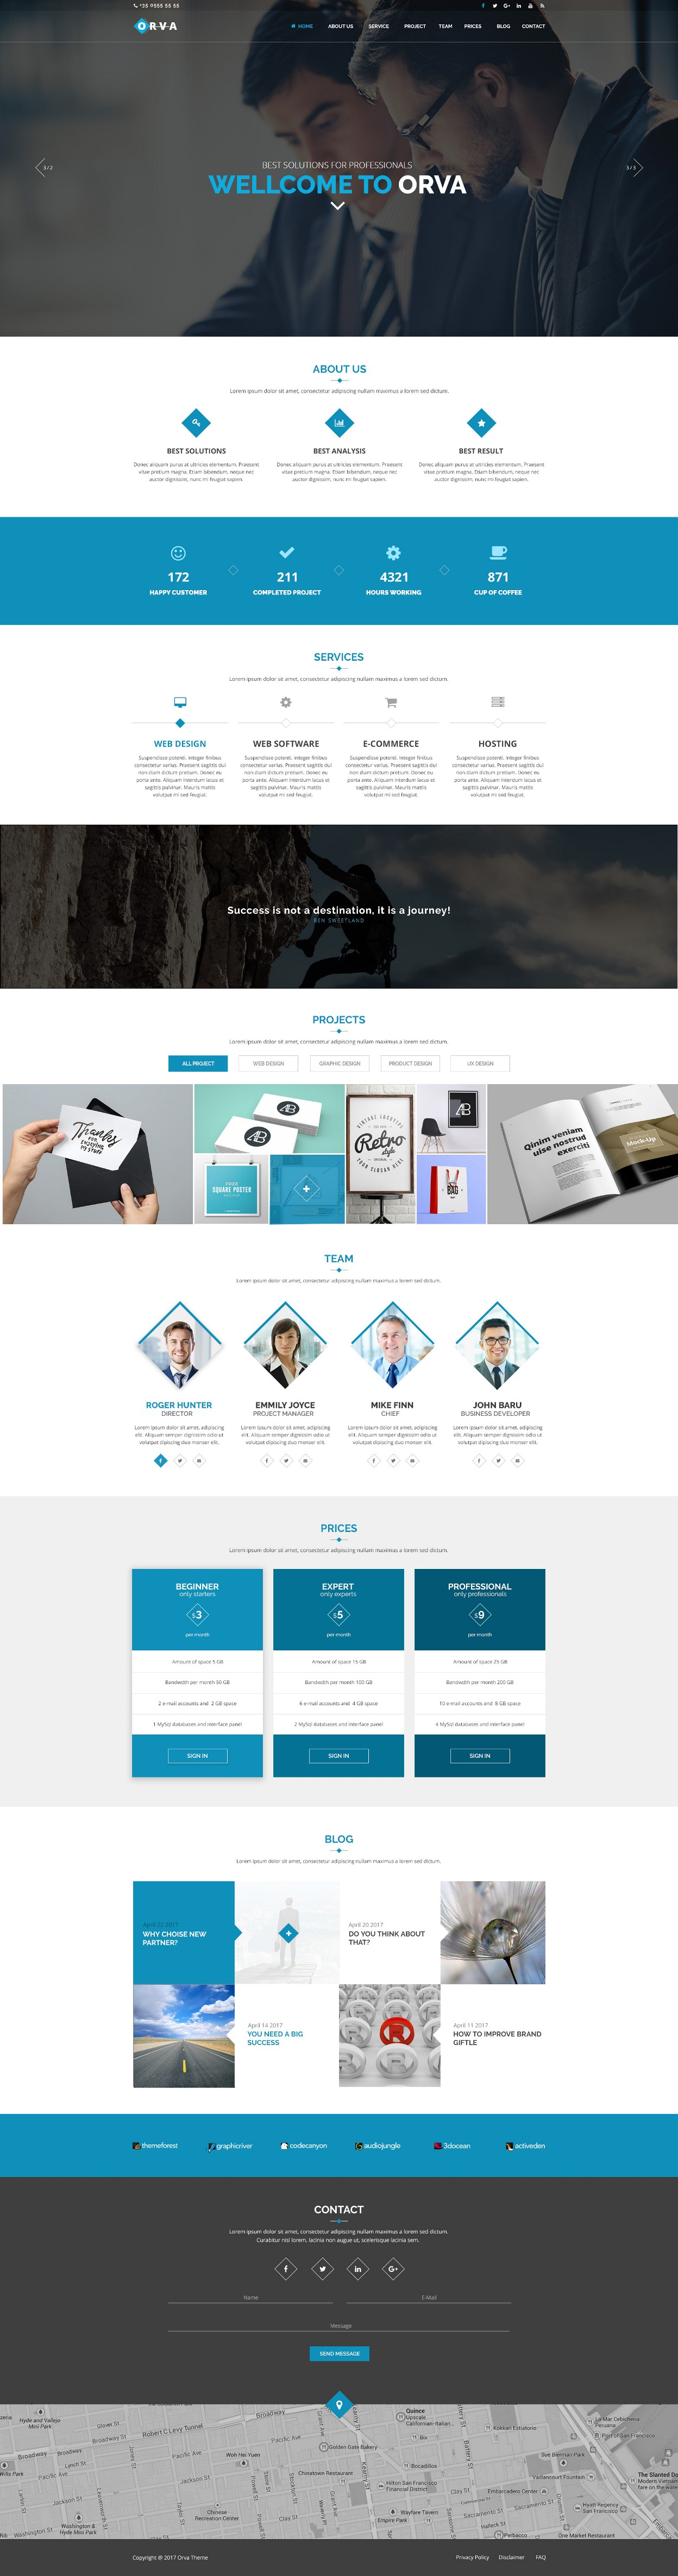 orva themeforest one page corporate psd template kurumsal tema serdar sezer